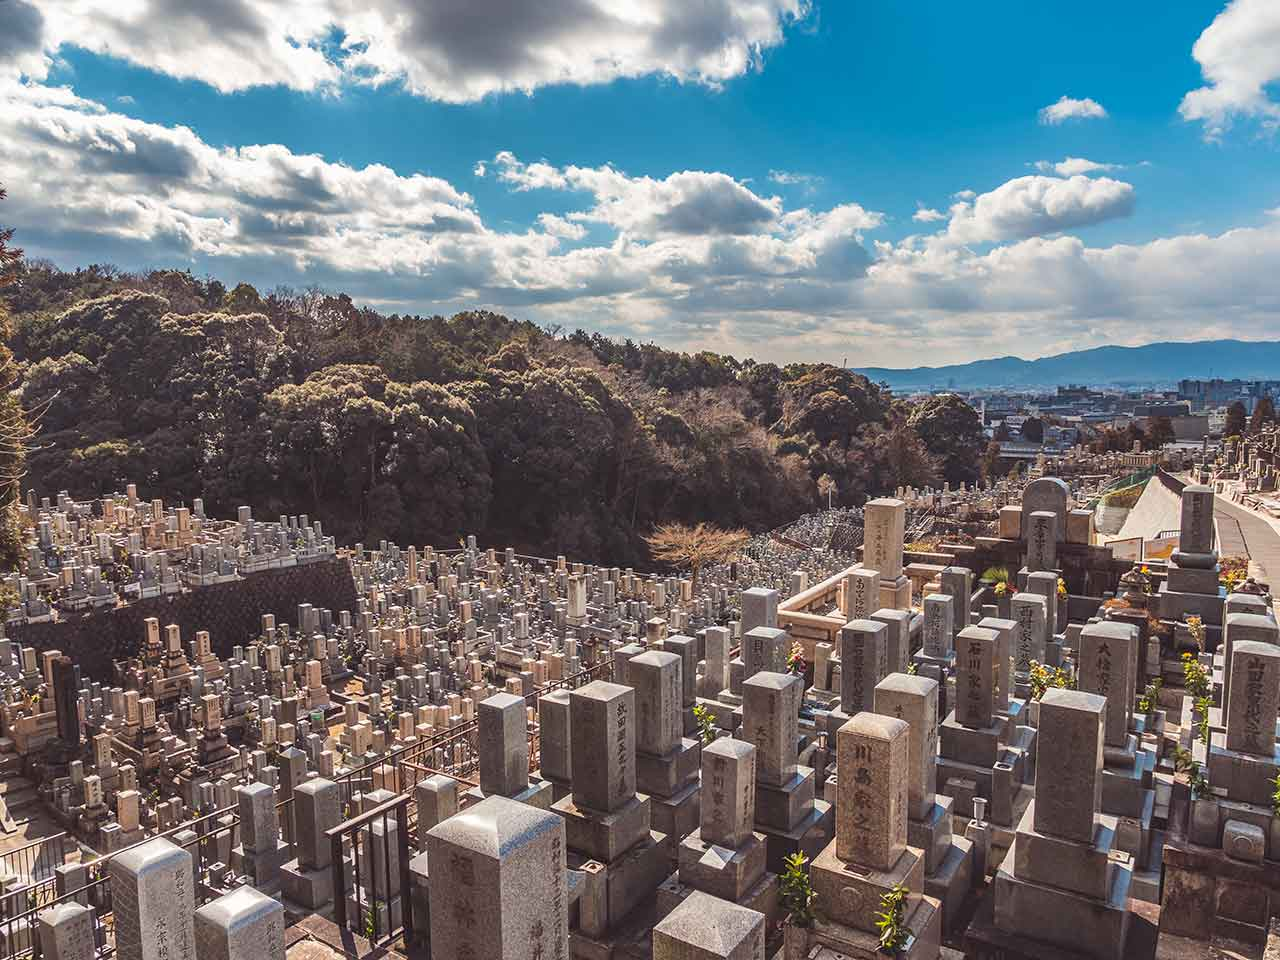 Friedhof am Fuße des Kiyomizu Dera Tempels in Kyoto Japan